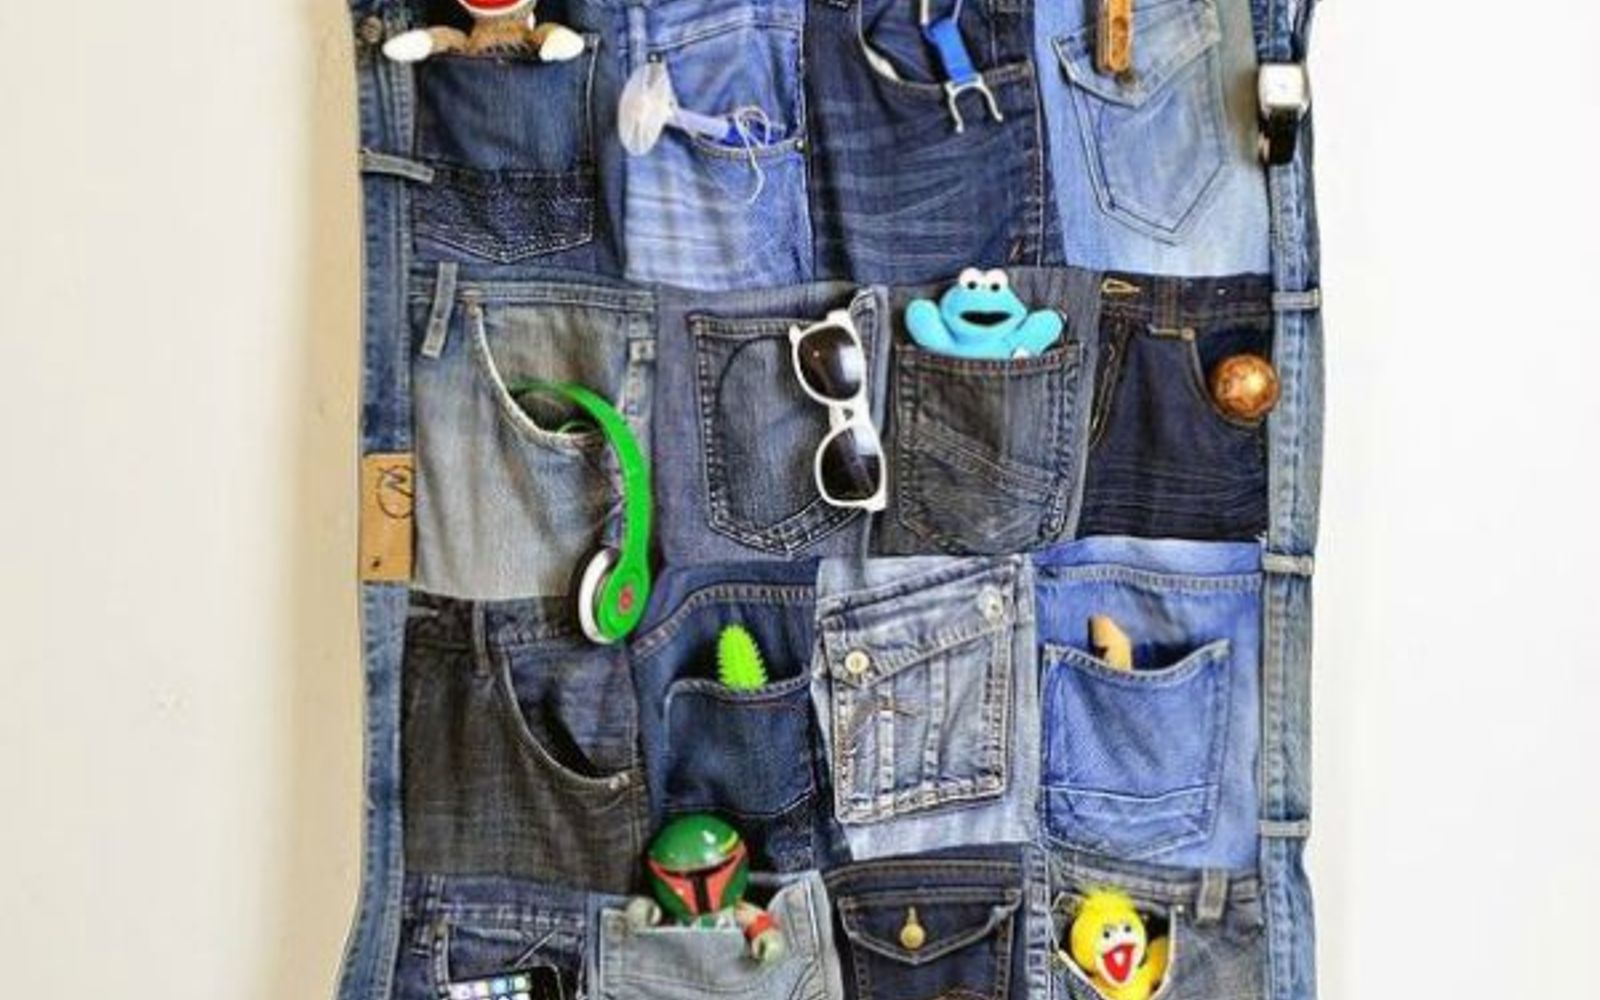 s 11 upcycles so simple you ll wonder why you ve never thought of them, crafts, repurposing upcycling, Turn Your Worn Jeans into Wall Organization